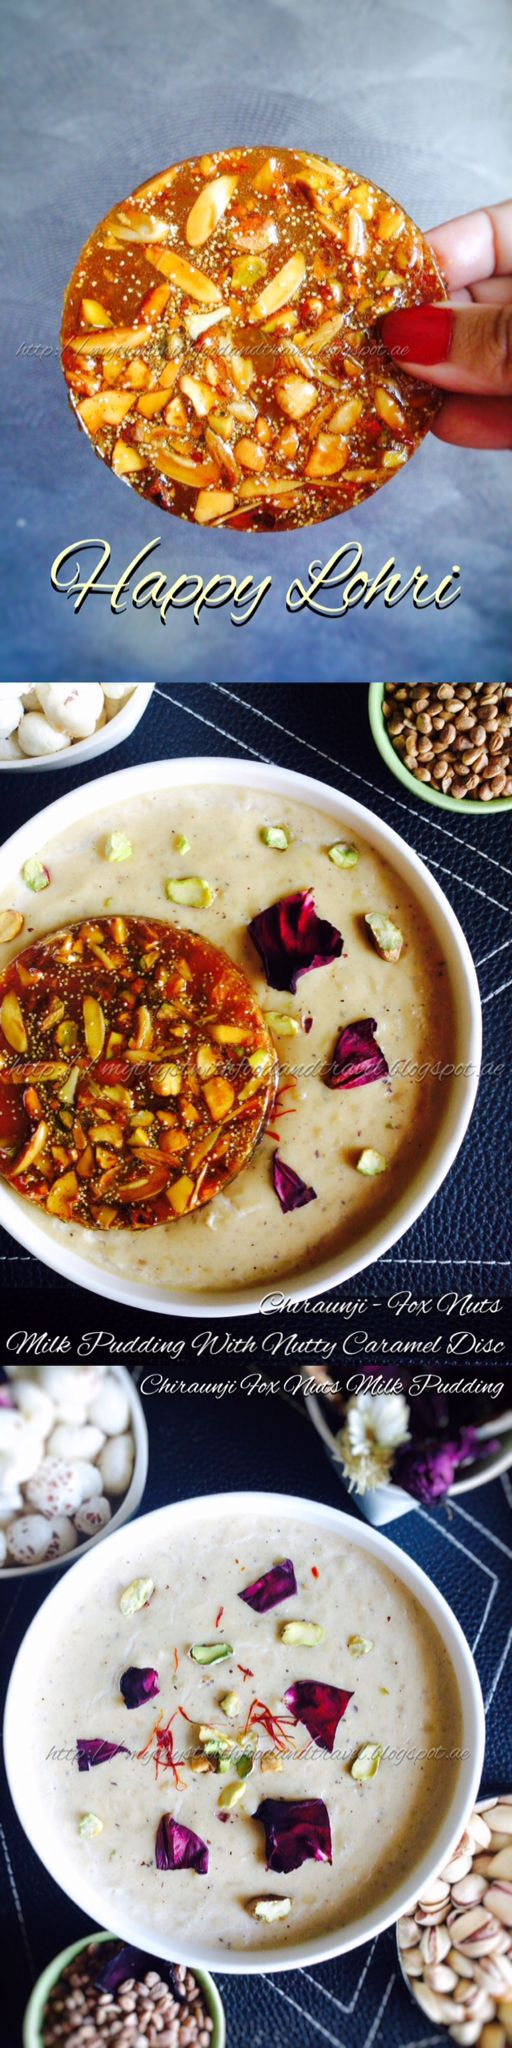 Chironji Makhane Kheer With Mixed Dry Fruit Chikki / Chiraunji Fox Nuts Milk Pudding With Nutty Caramel Disc .   It's time to give your festive sweets a makeover. Try this traditional dessert with an exciting twist to it, which gets your salivary glands on the drive, the moment you lay your eyes on it.   Eating a spoonful of this rich delicious Kheer with the sugary crunch from the nutty caramel bites is a delight beyond words. This dessert is apt for festivities and celebrations because of…